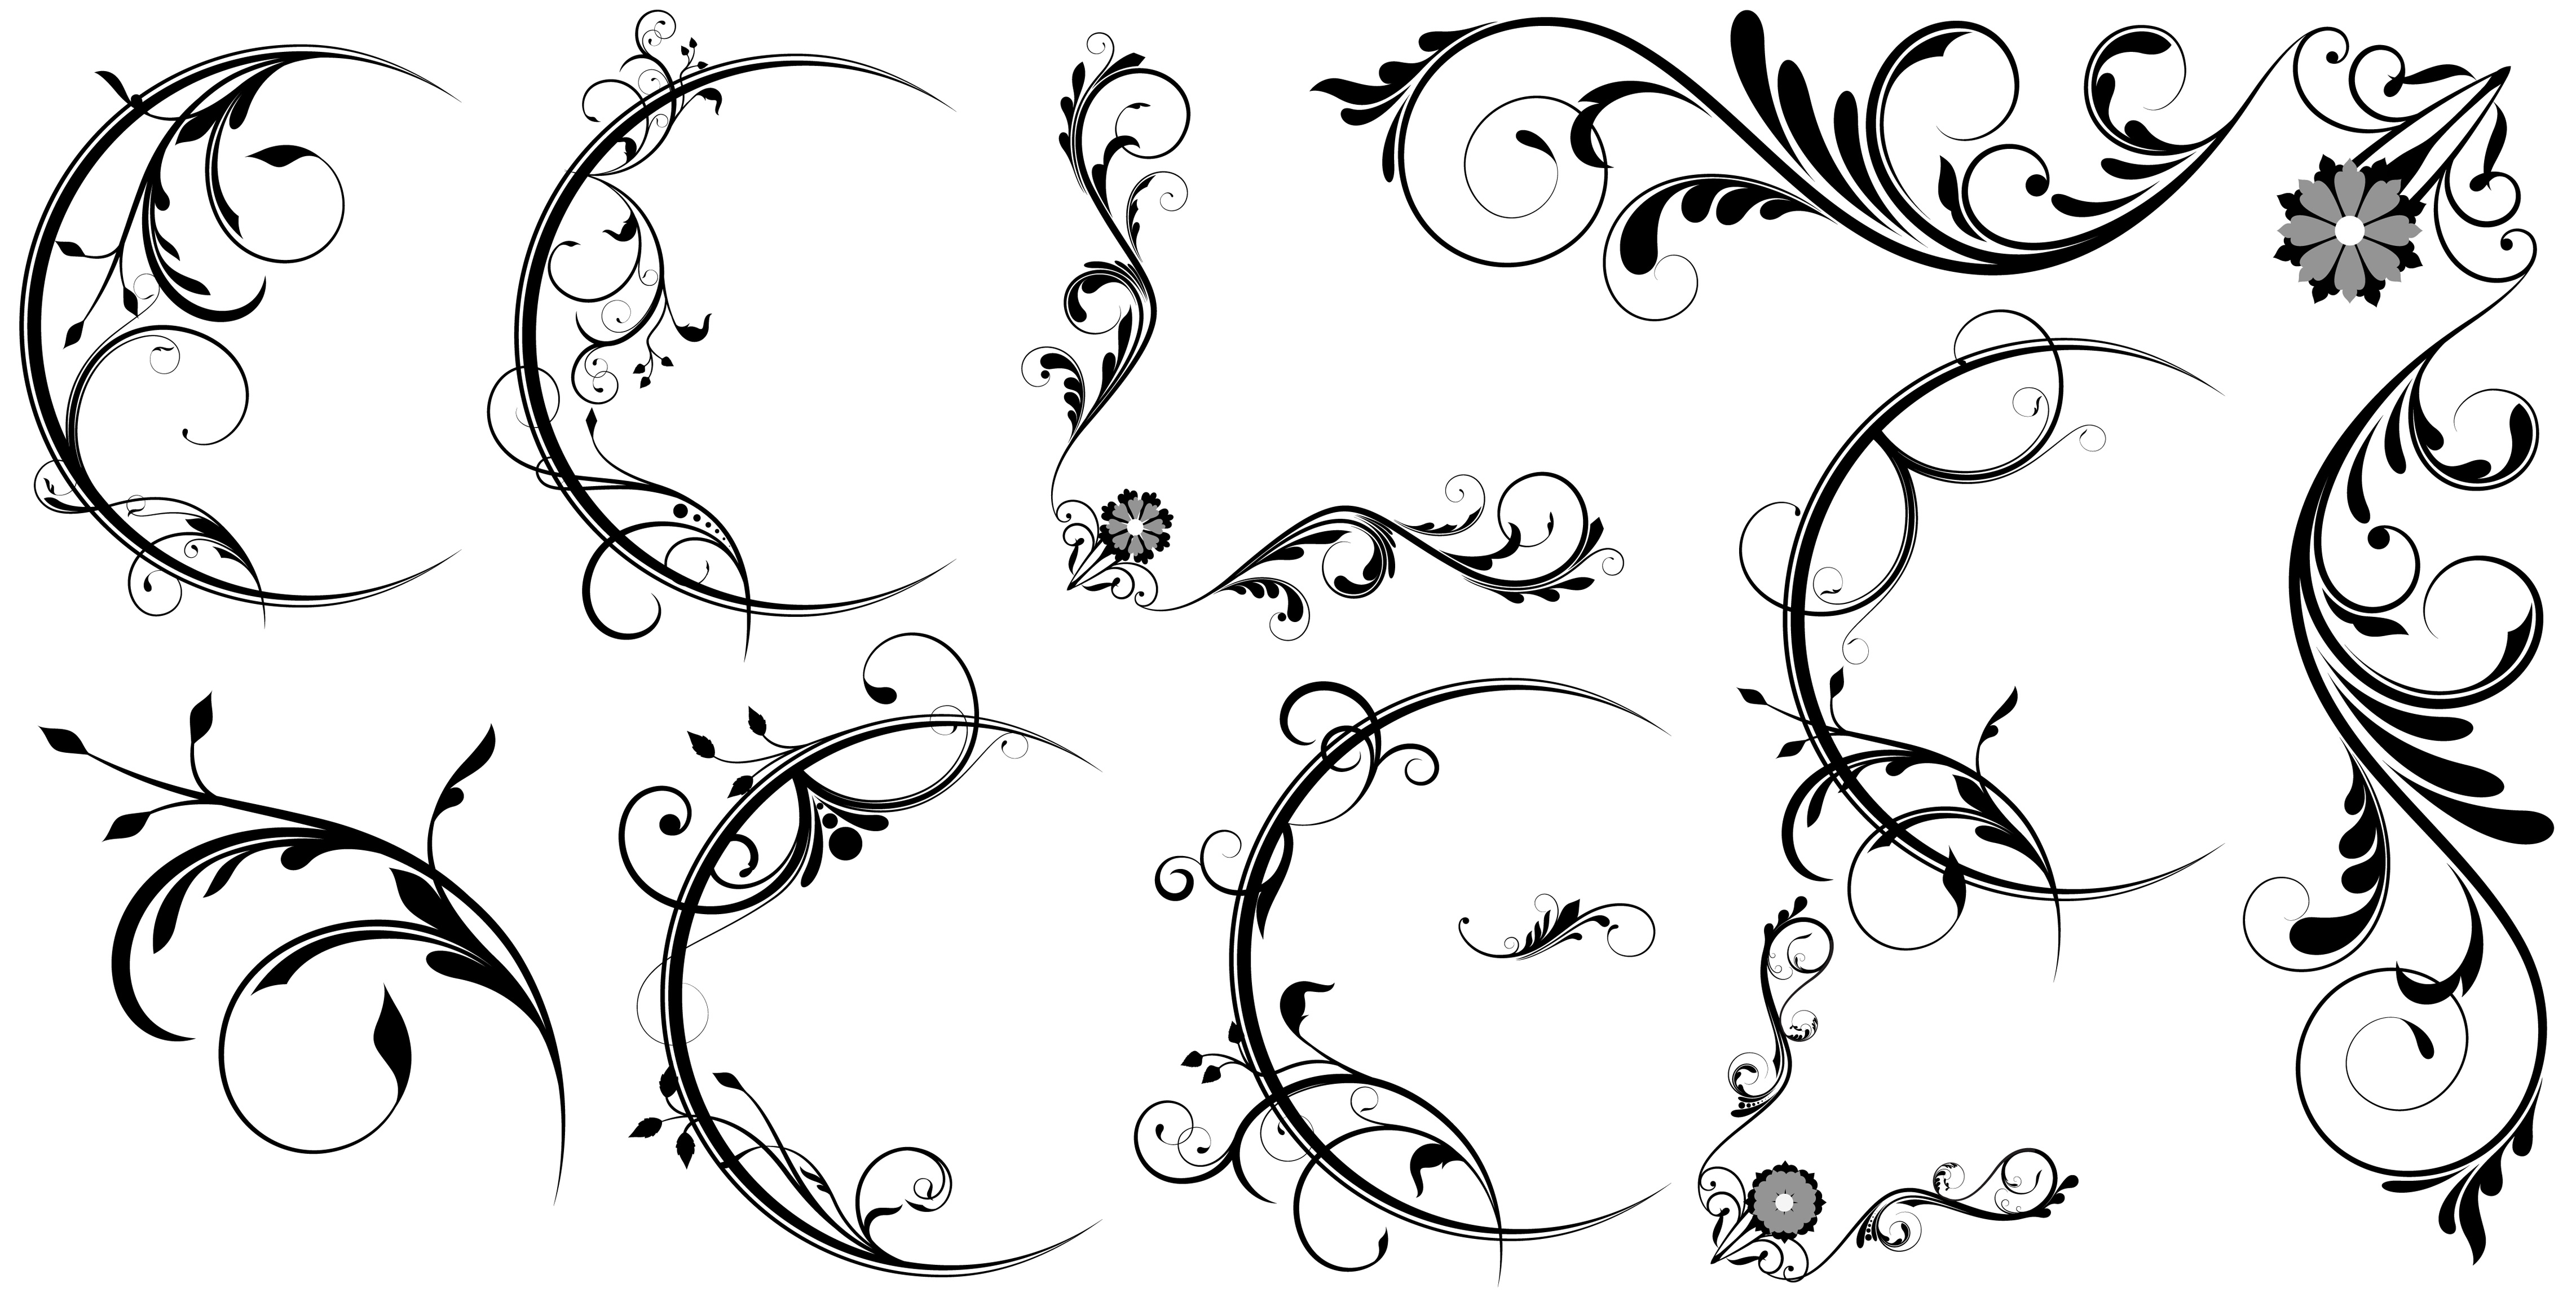 Line Art Designs For Borders : Photoshop vector line borders images free